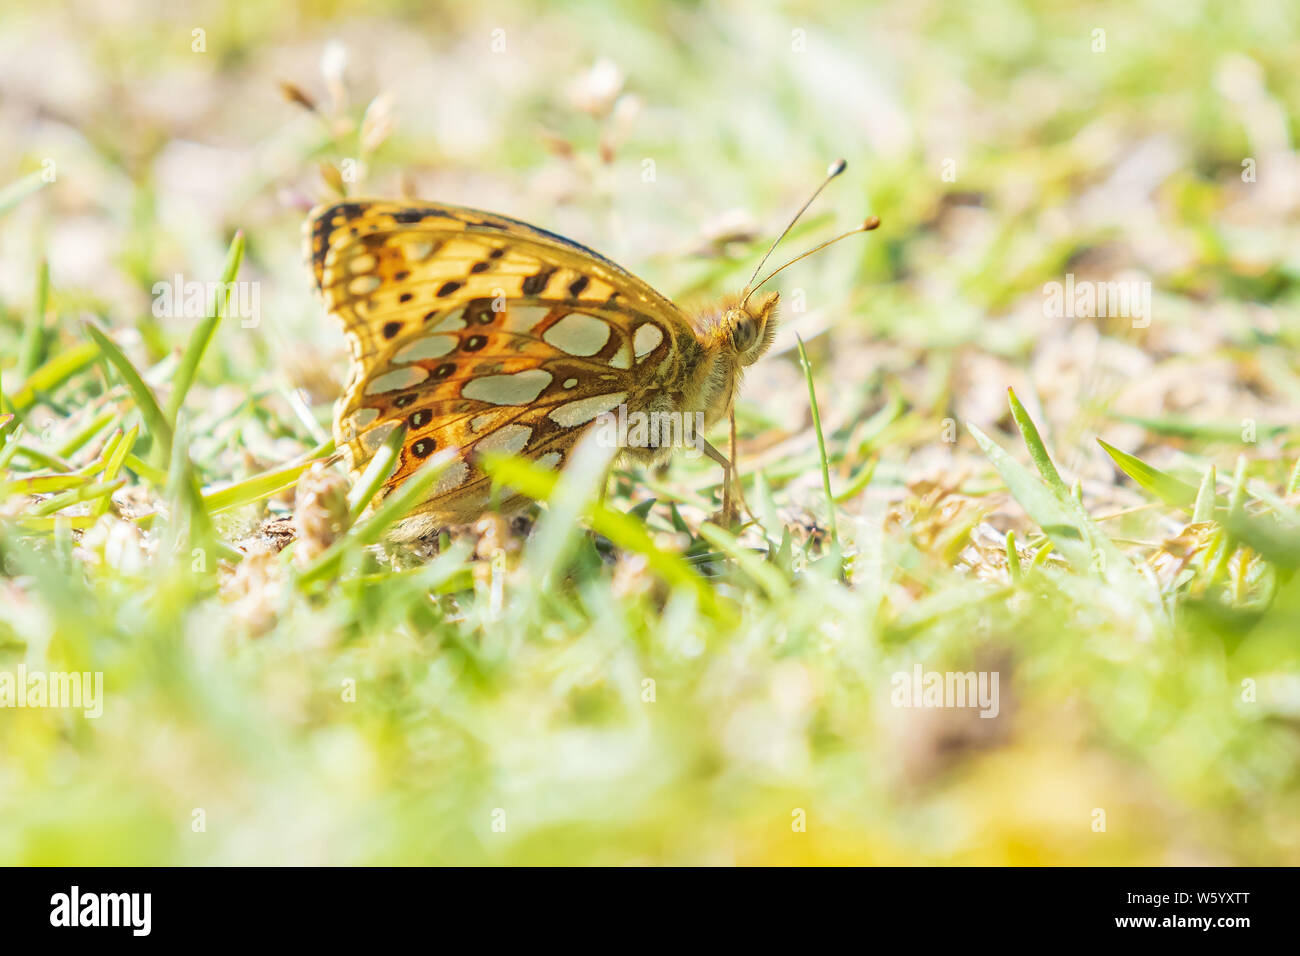 Queen of spain fritillary, issoria lathonia, butterfly resting in a meadow. Coastal dunes landscape, daytime bright sunlight. Stock Photo